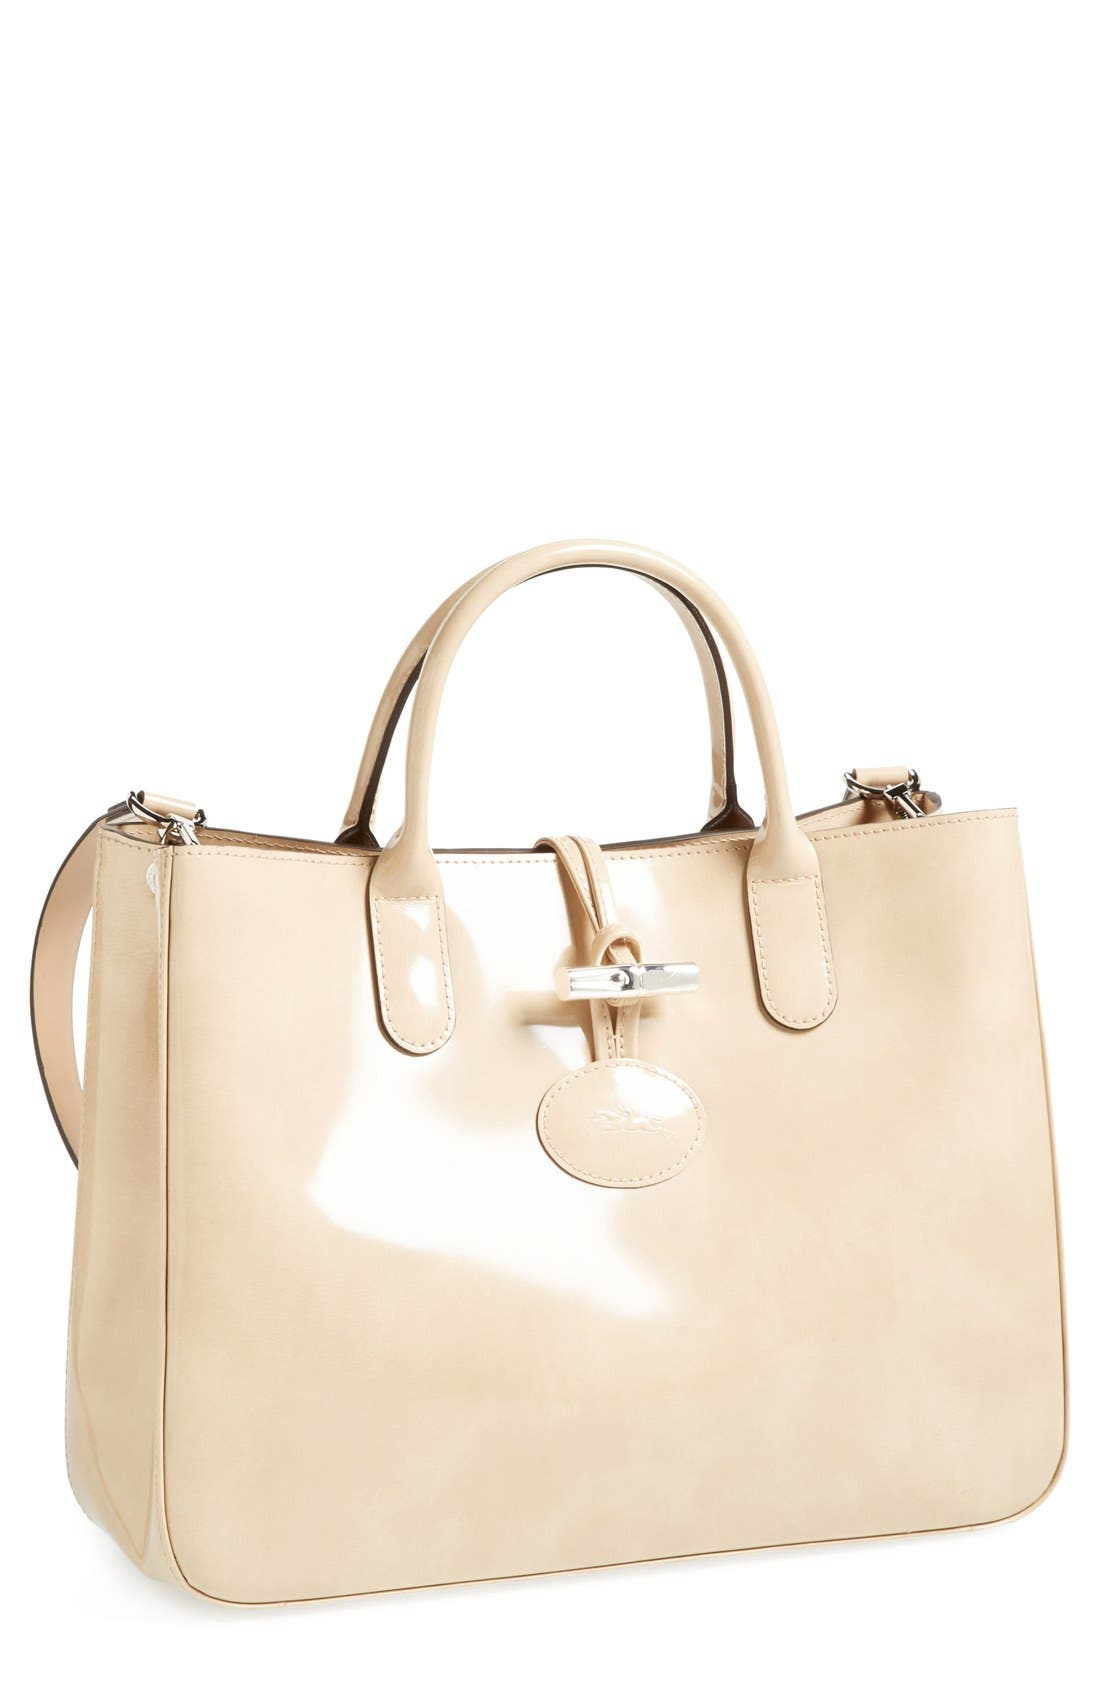 Main Image - Longchamp 'Medium Roseau Box' Tote